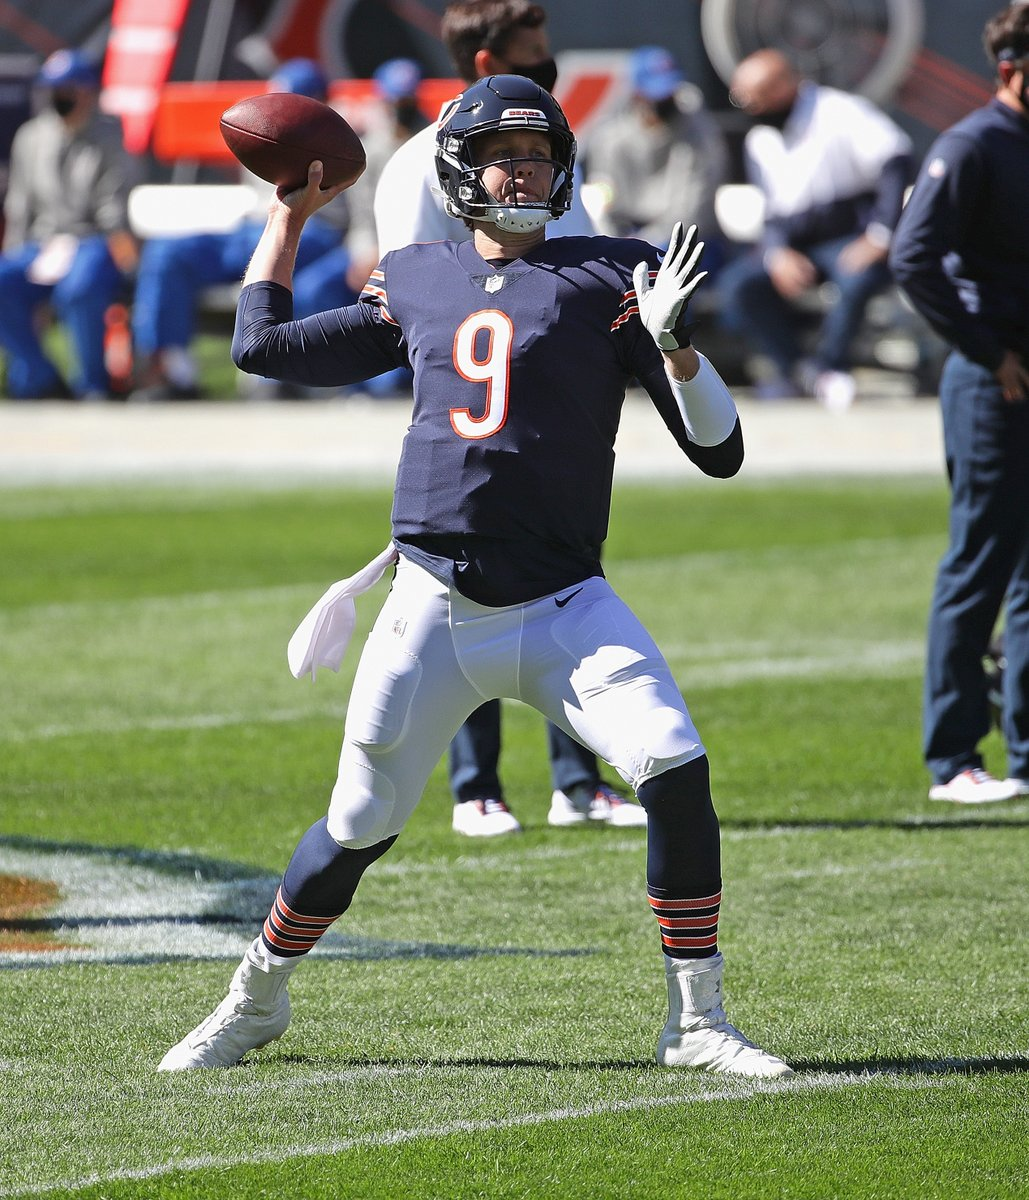 Foles had 3 TDs in the 4Q to lead the Bears in an epic comeback win 😳  Bears have their QB1?